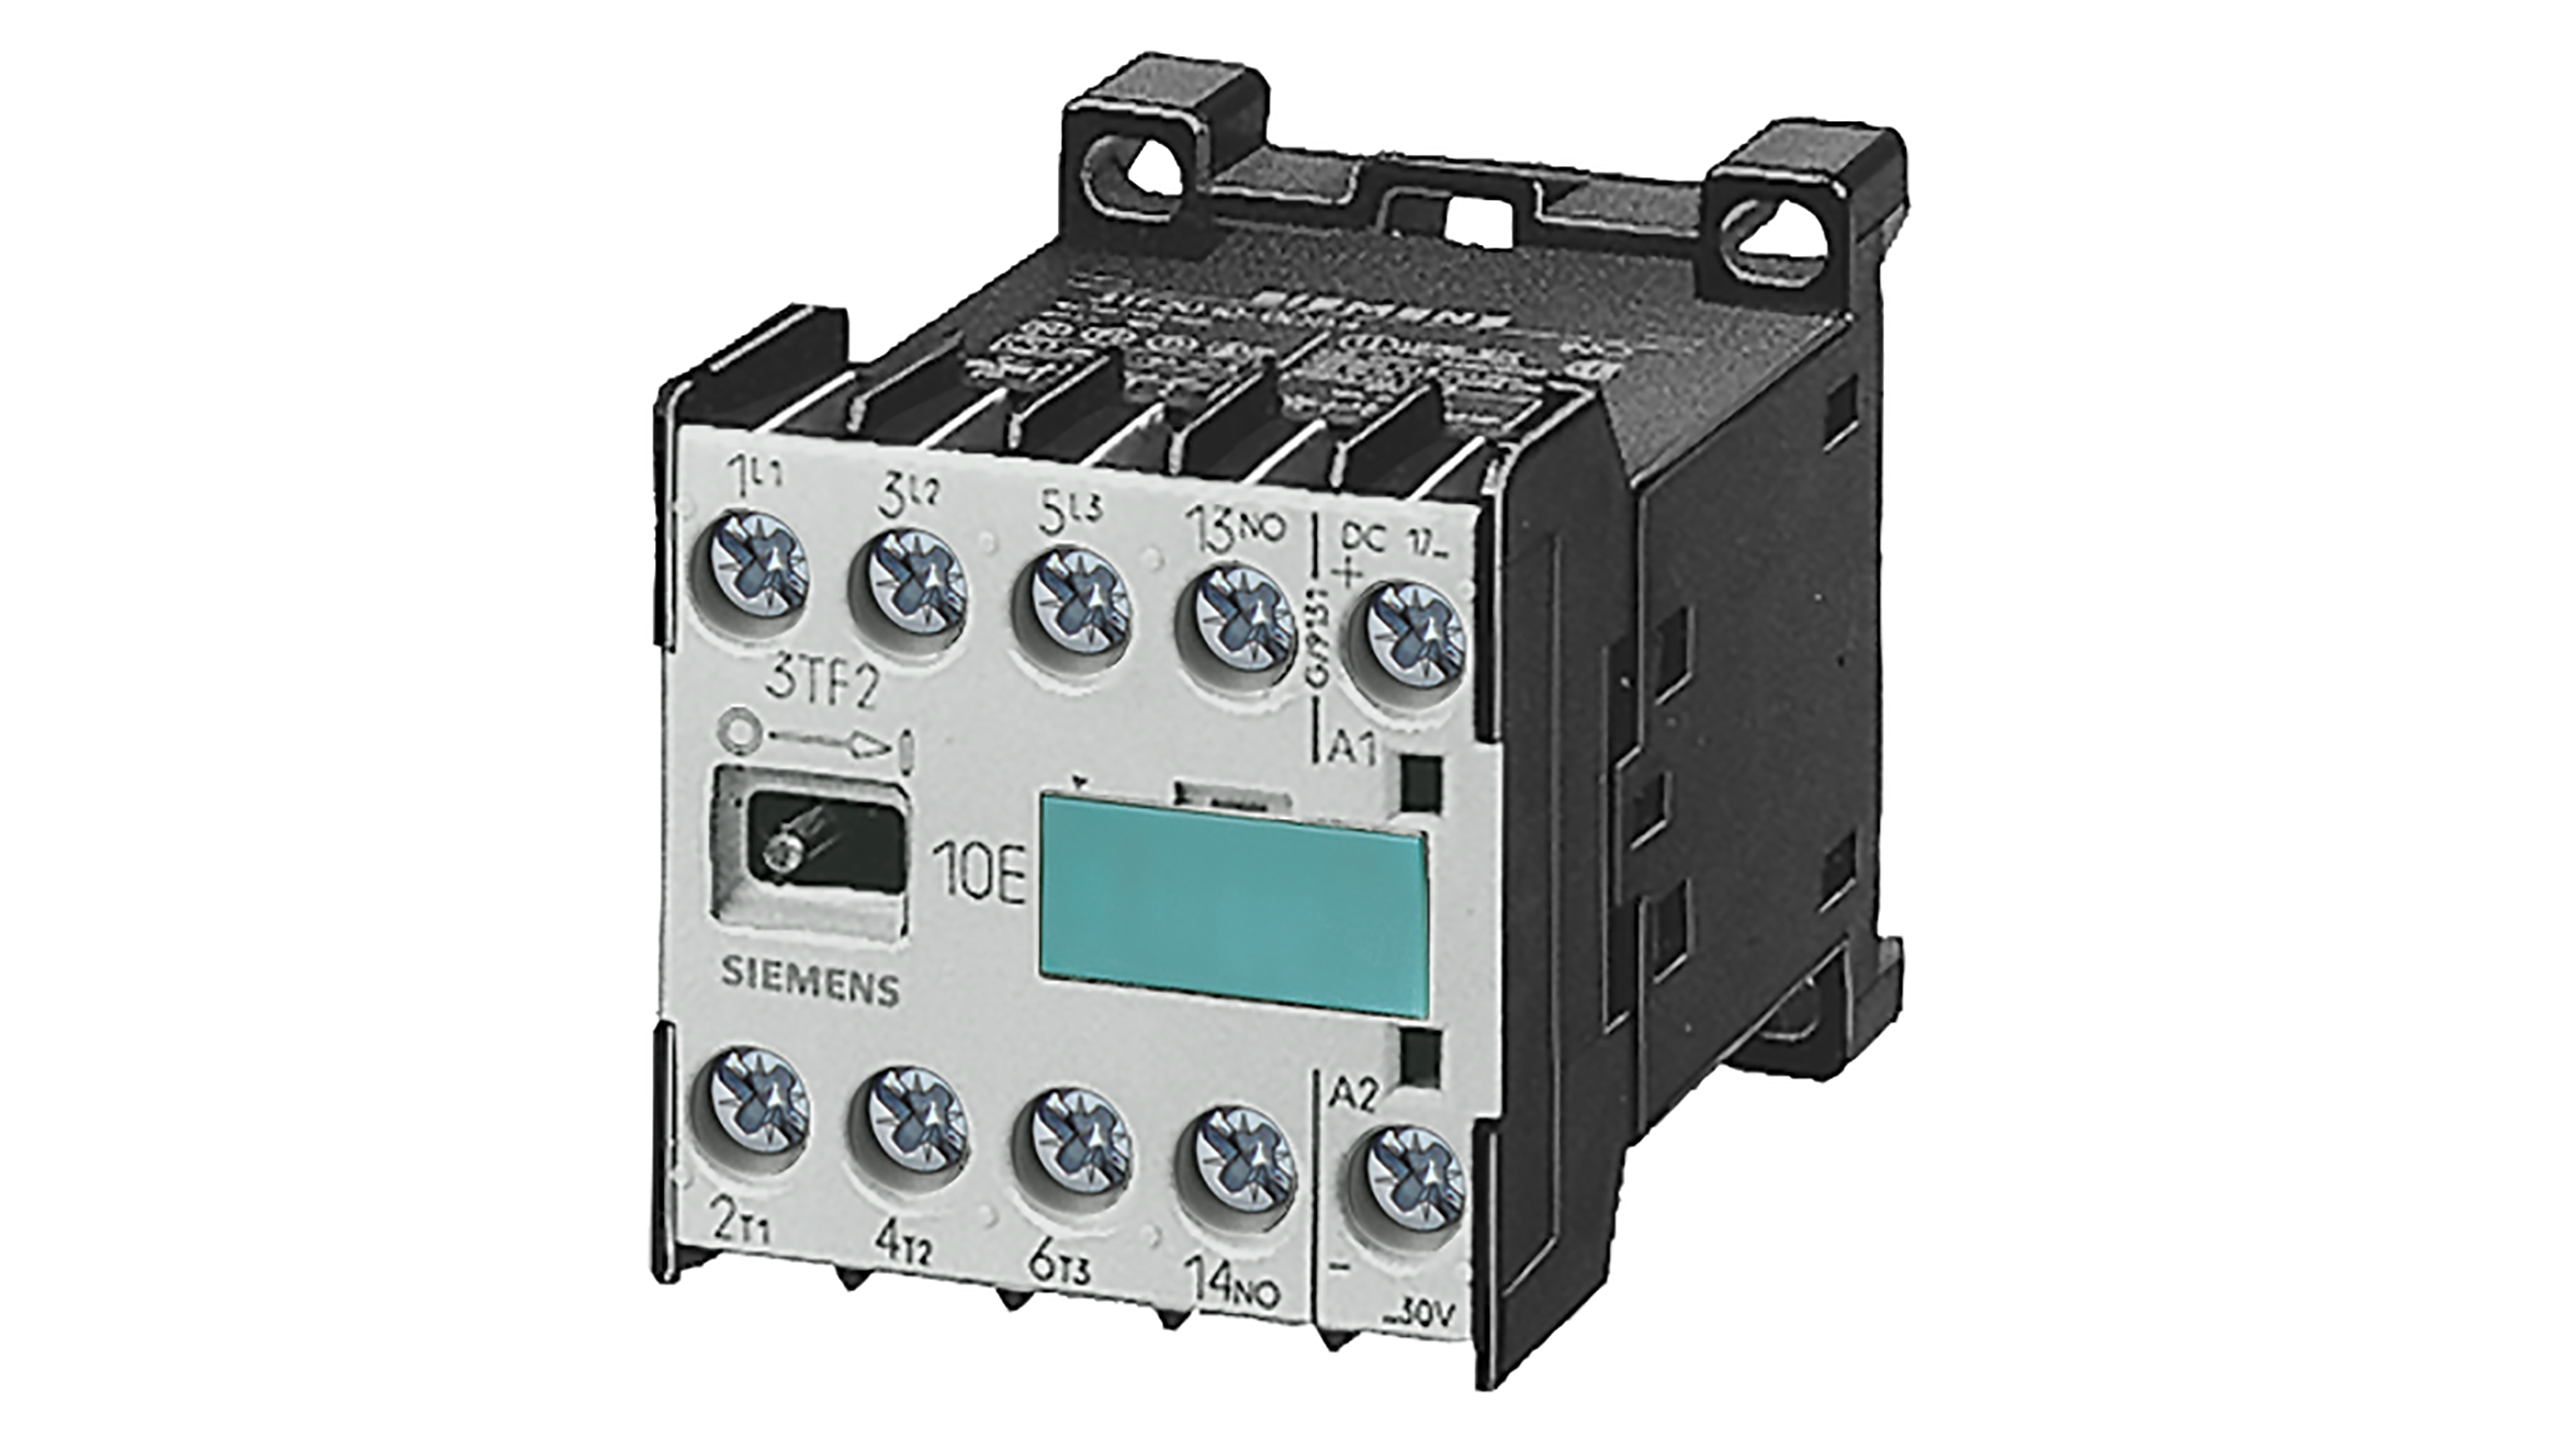 3TF2001-0BB4 | Siemens |Contactor, Size 00, 3-pole, AC-3 4 kW/400 V *Ready Stock - 1 UNIT ONLY*